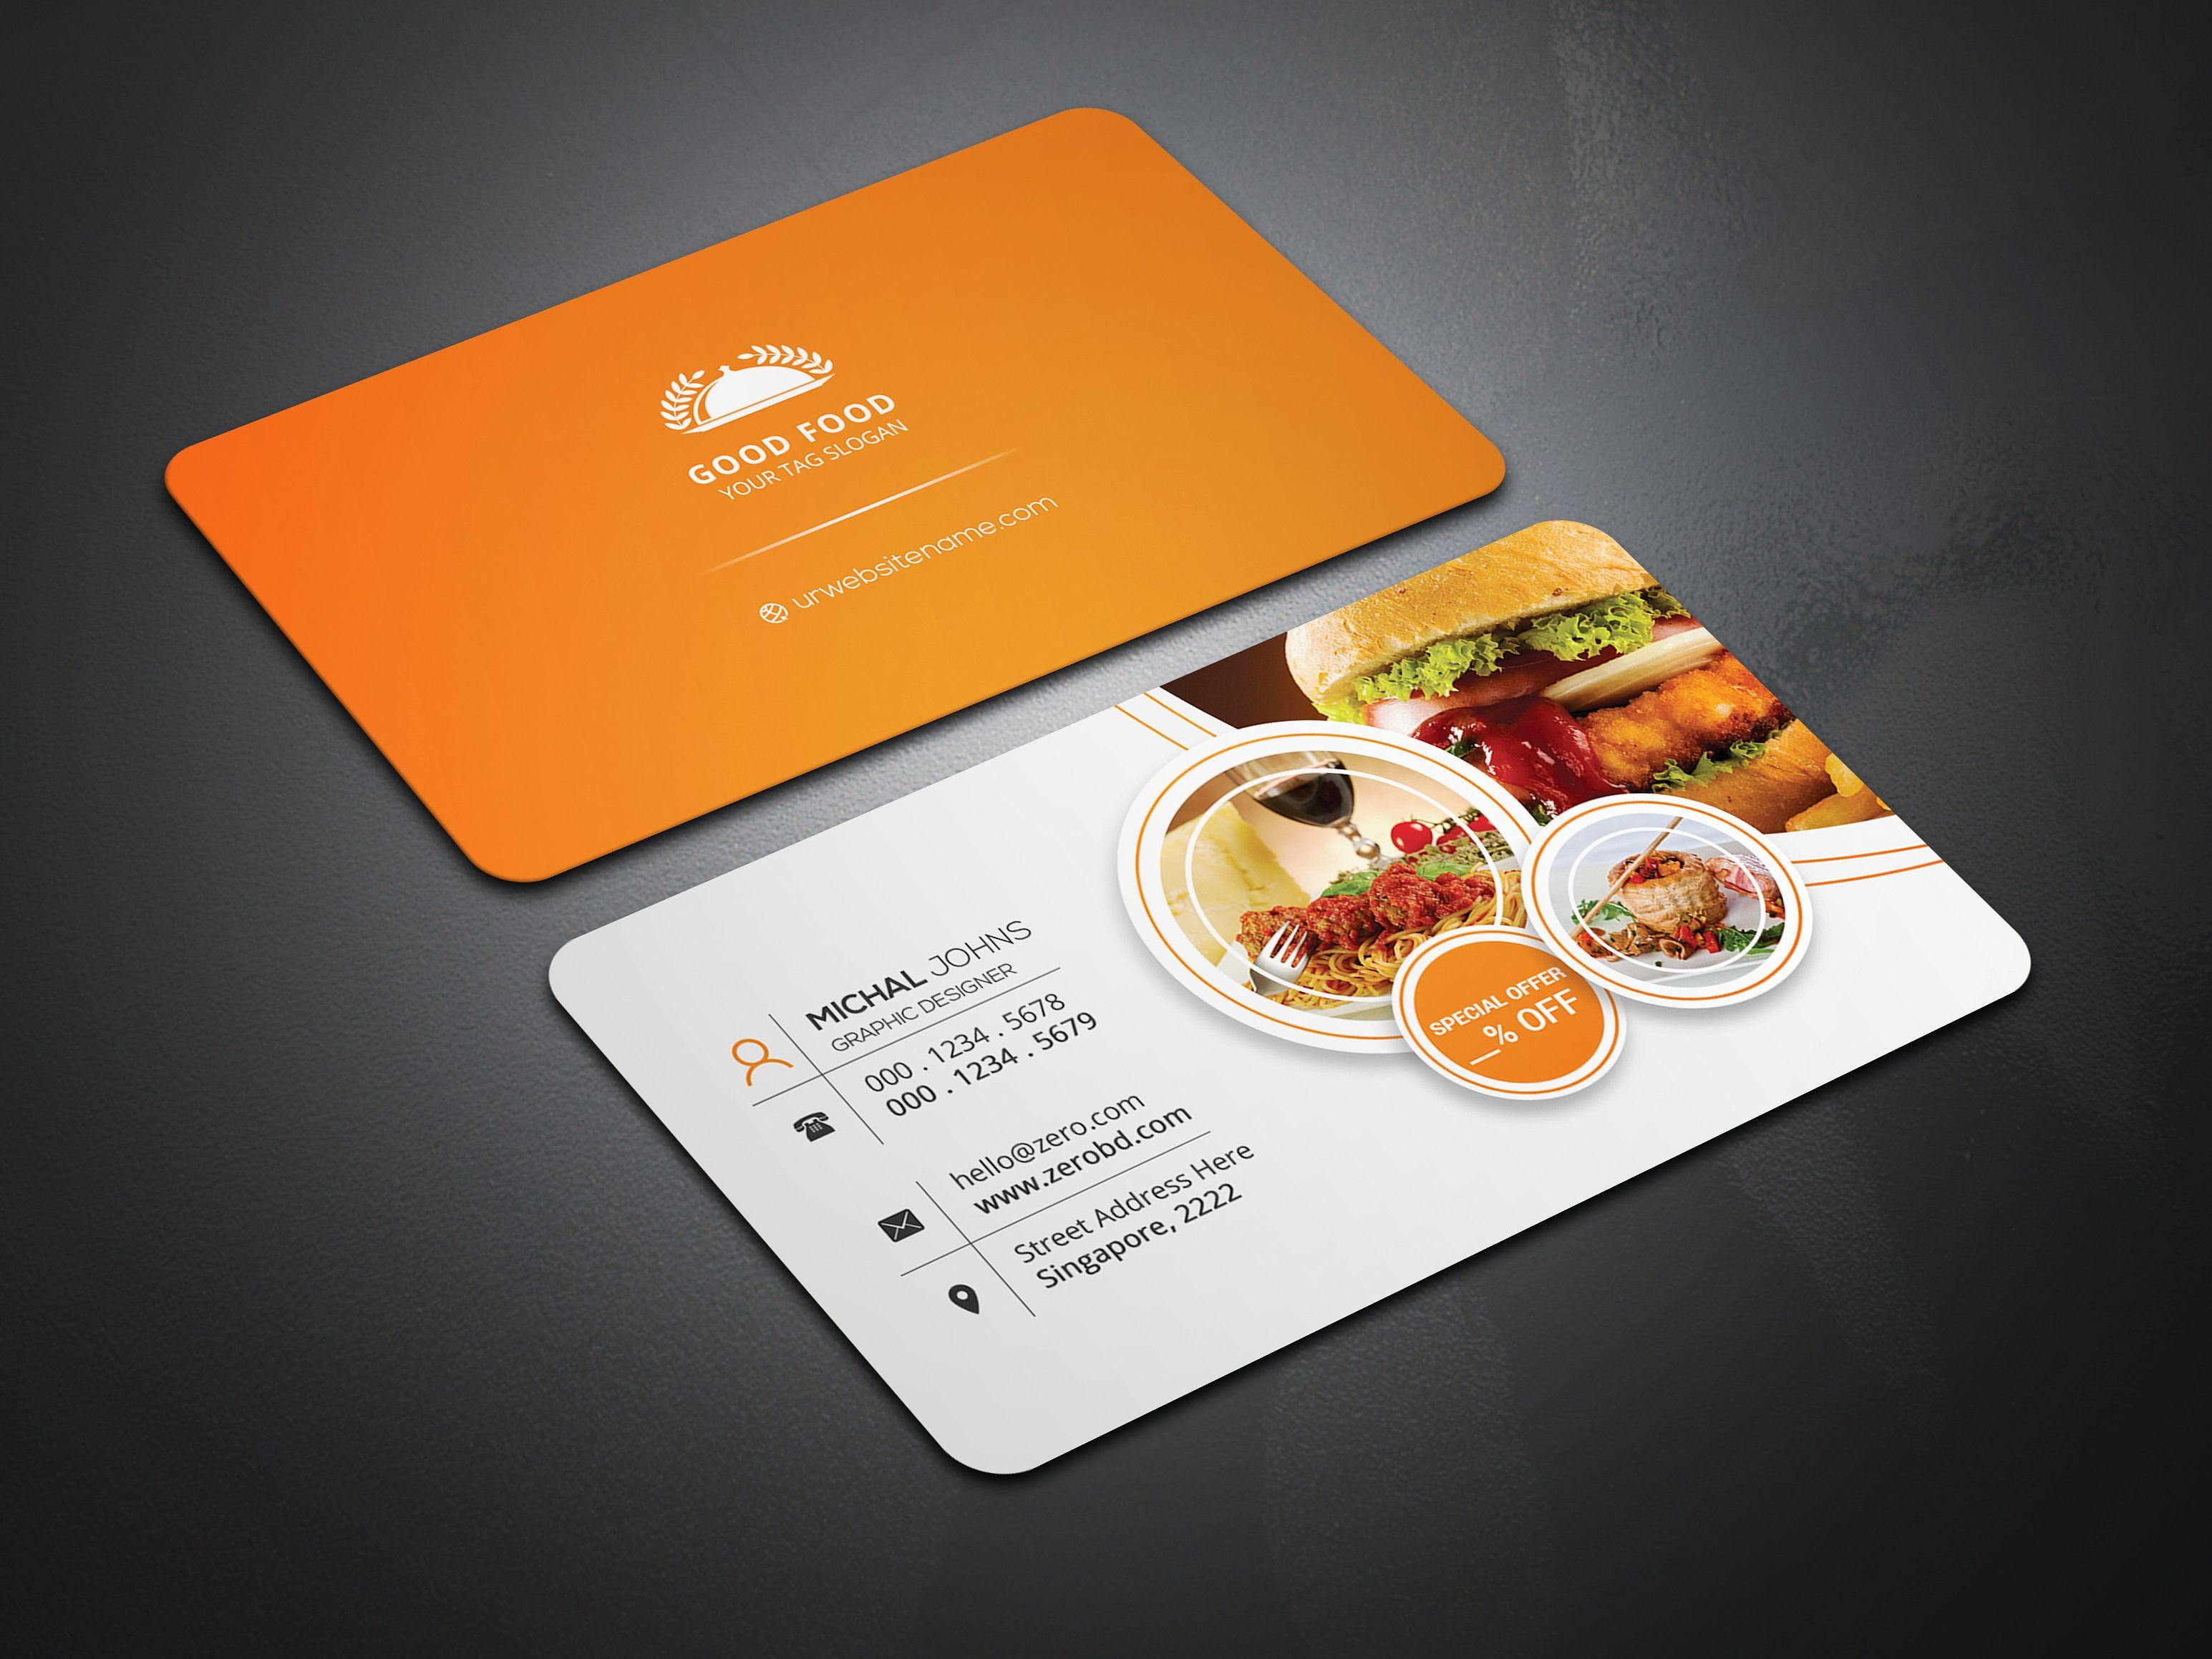 Looking Unique Business Card Design Just Check My Profile I Ll Creat Unique And Print Re Food Business Card Restaurant Business Cards Restaurant Card Design